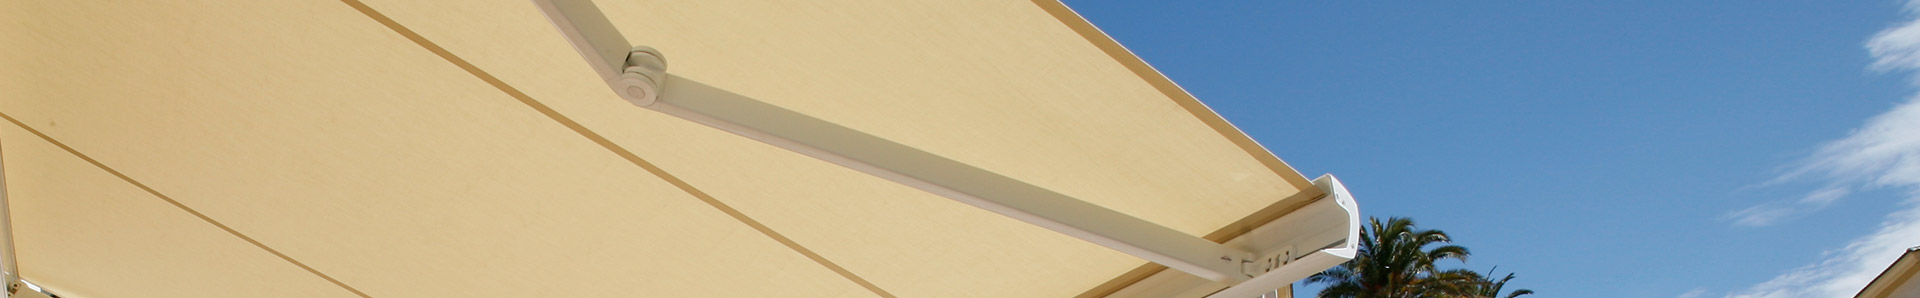 Folding Arm Awning Installation in Melbourne